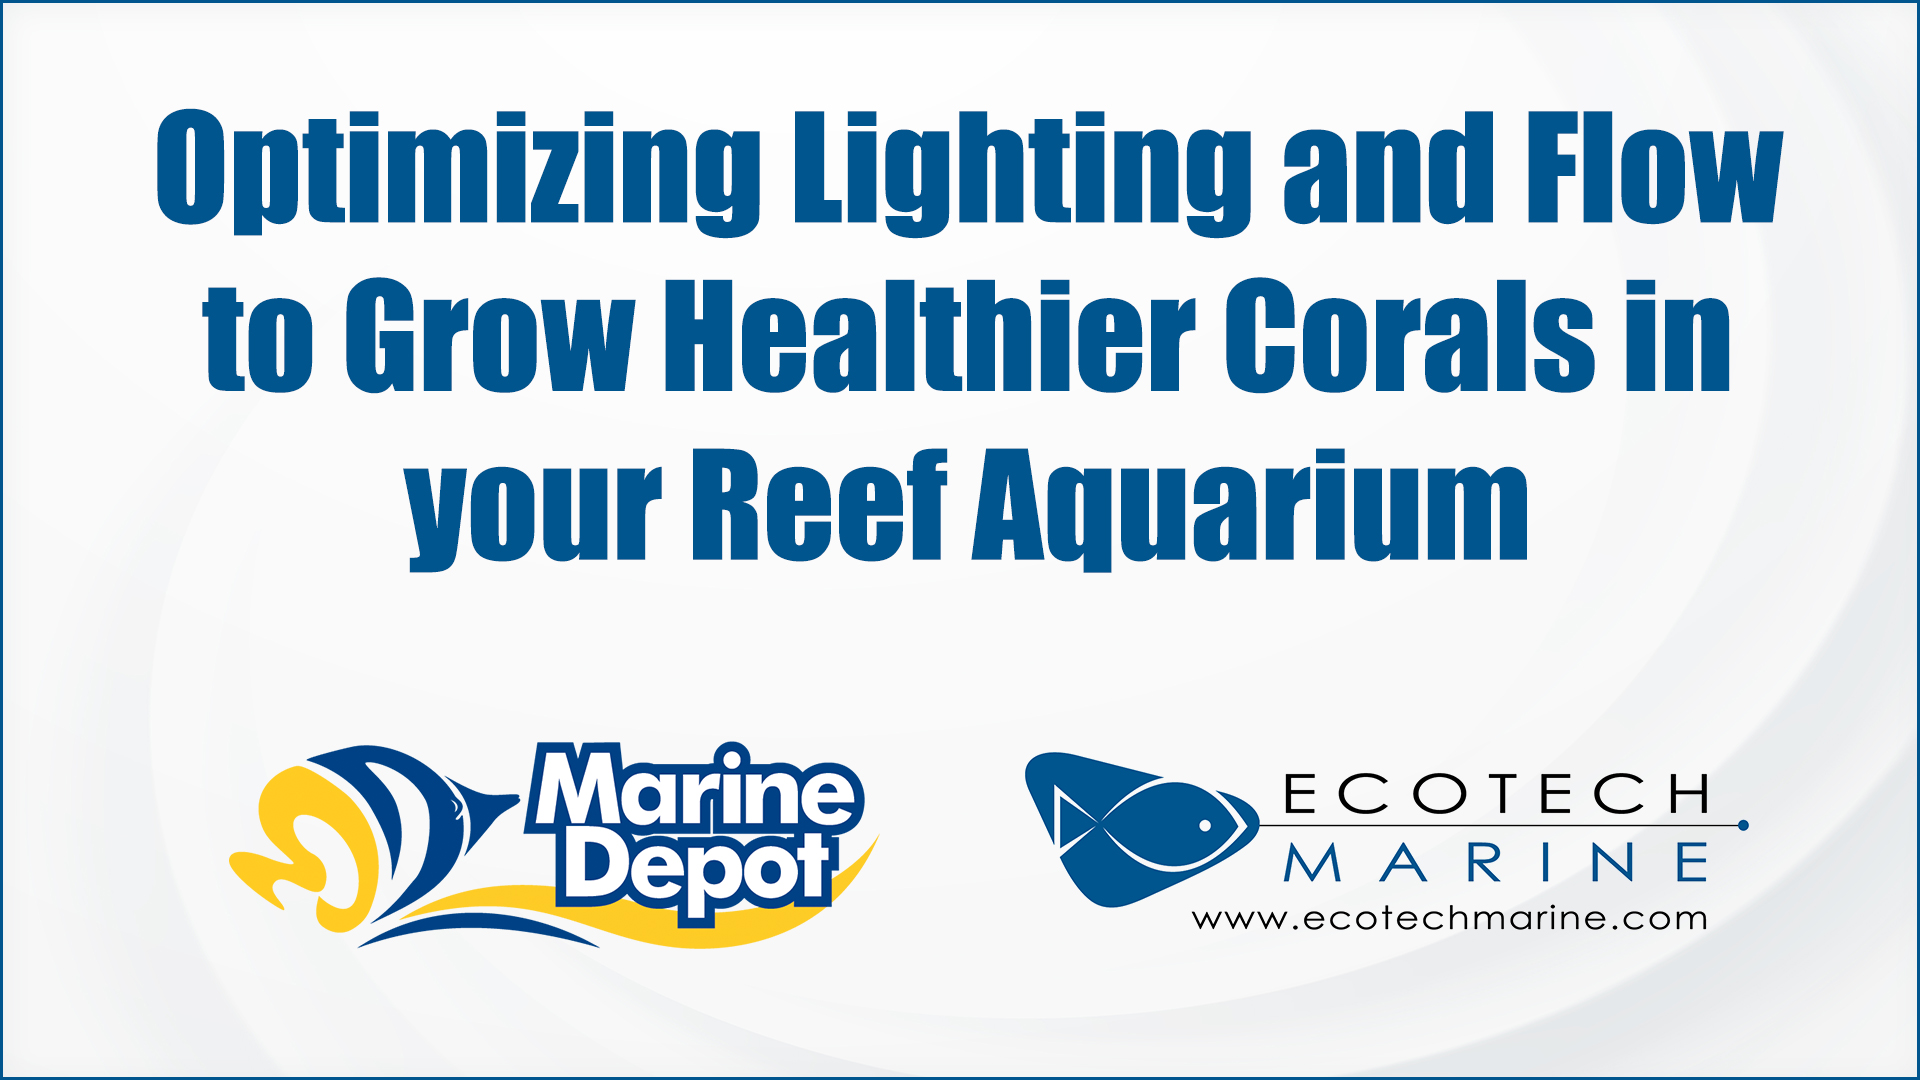 Optimizing Lighting and Flow to Grow Healthier Corals in your Reef Aquarium - Marine Depot Chats with Experts #3